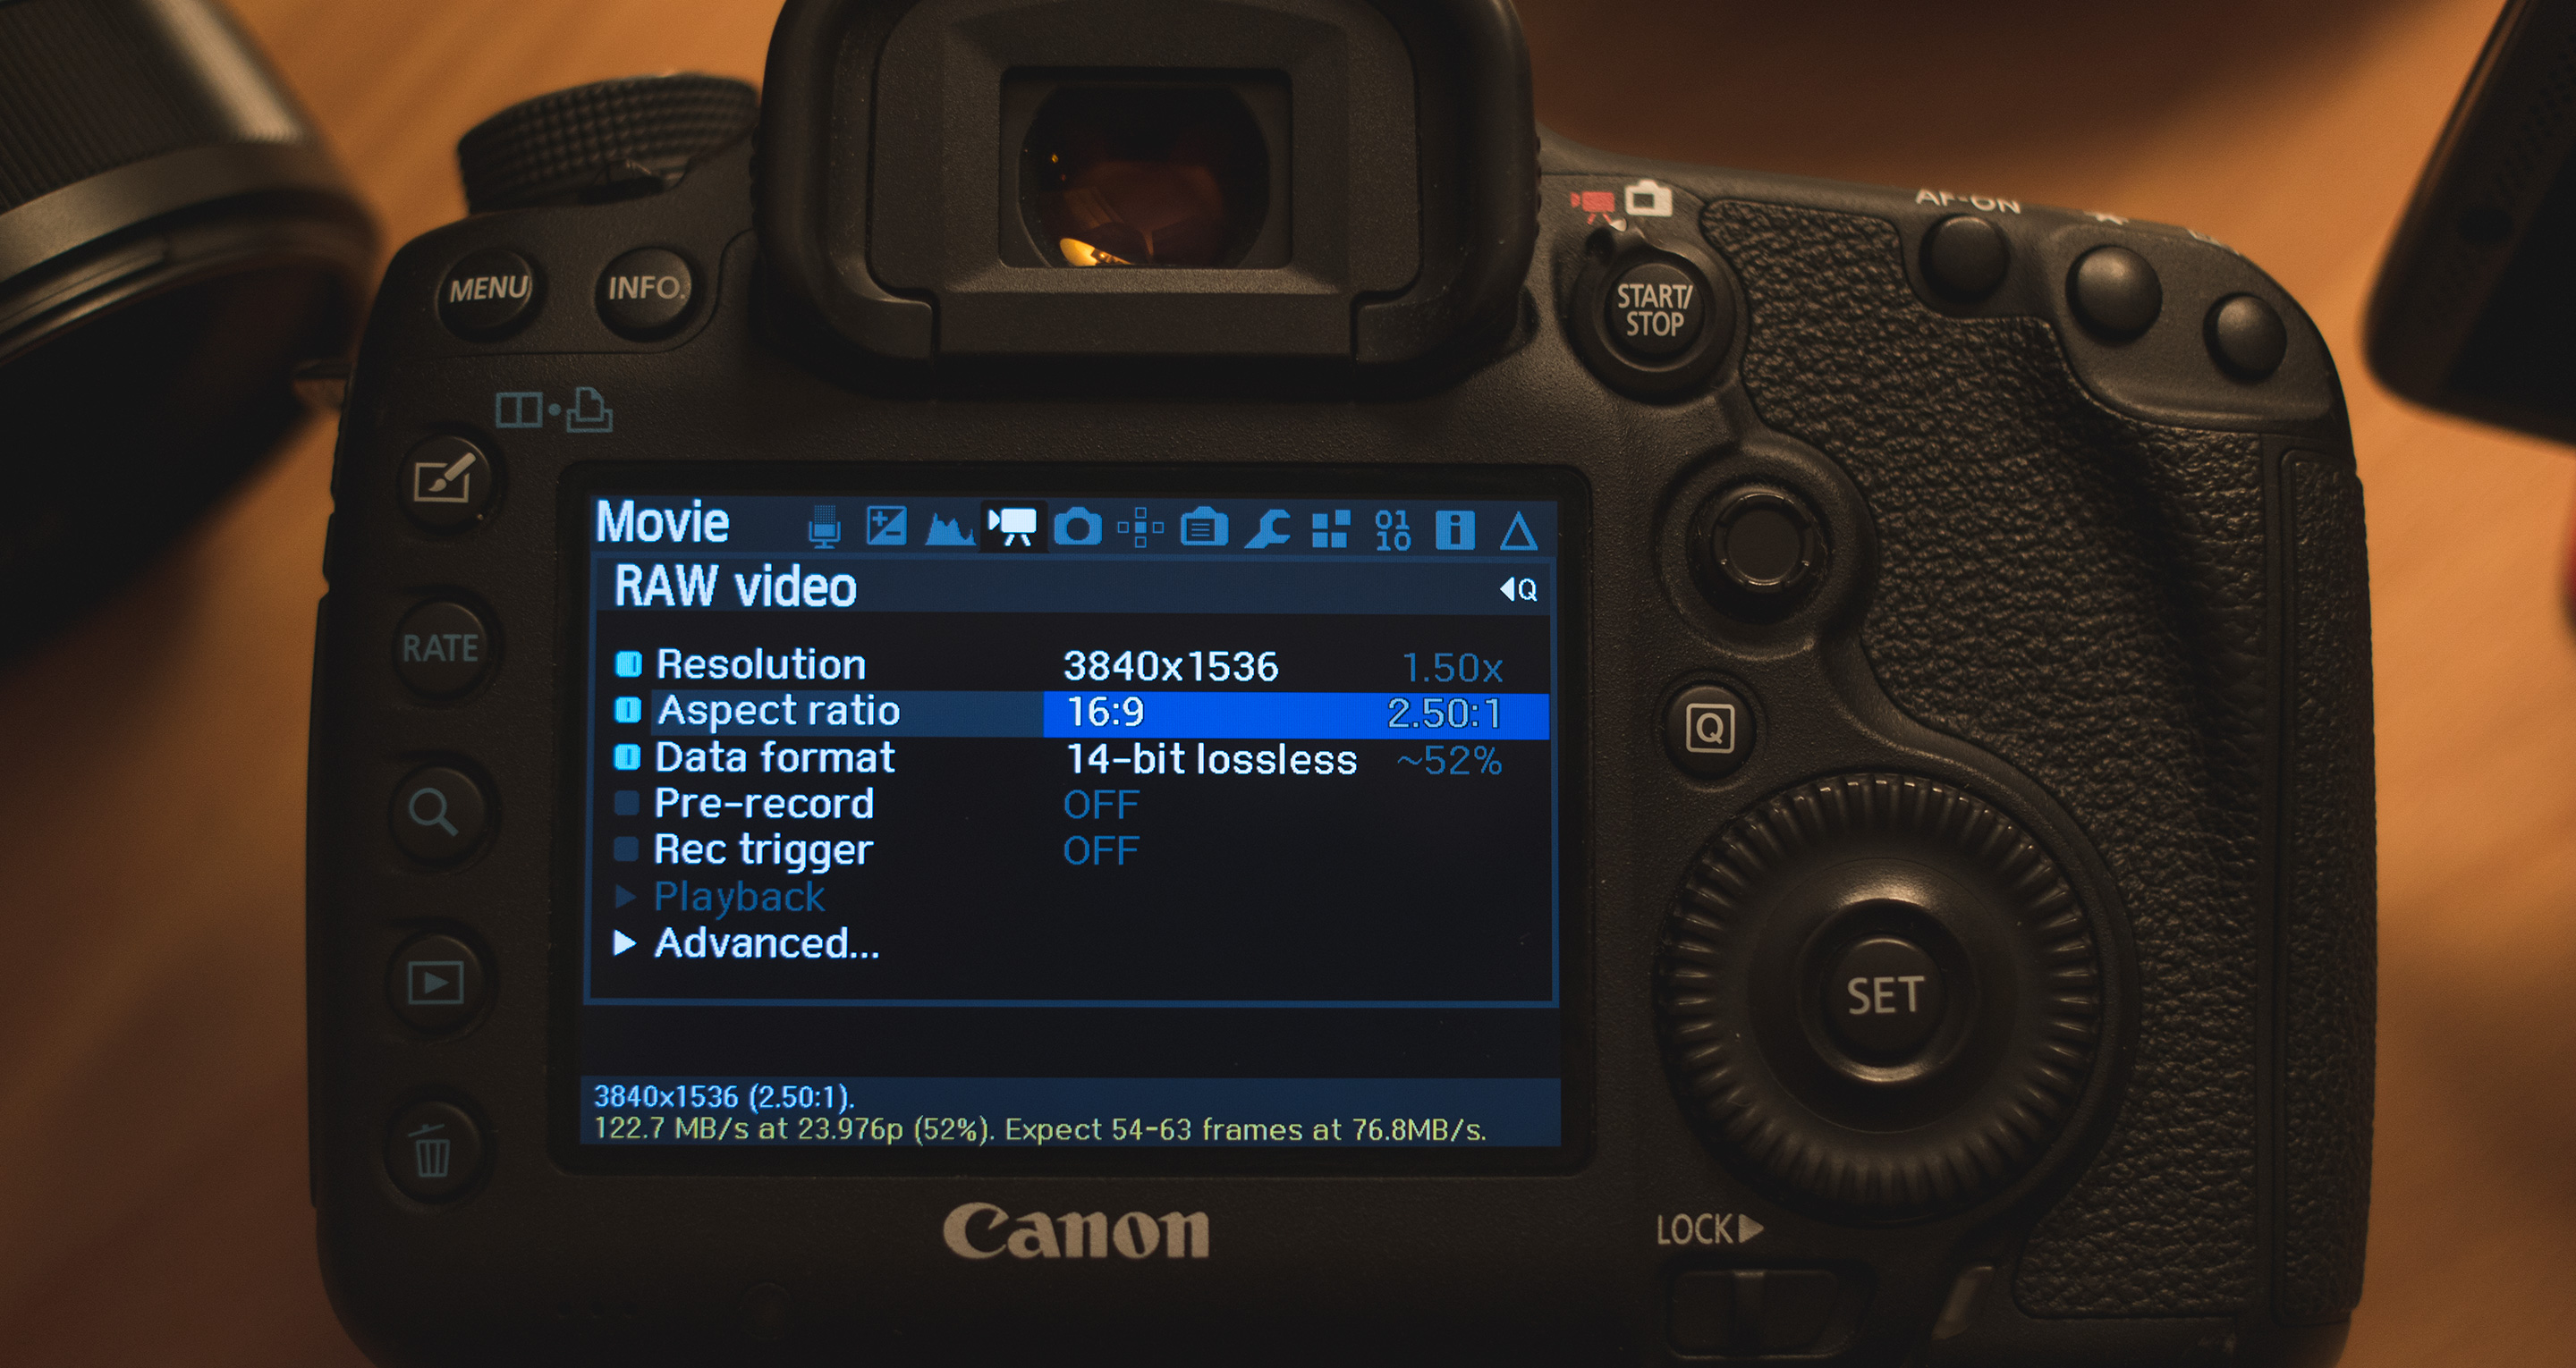 10-bit / 12-bit RAW on 5D Mark III, possible yes or no?